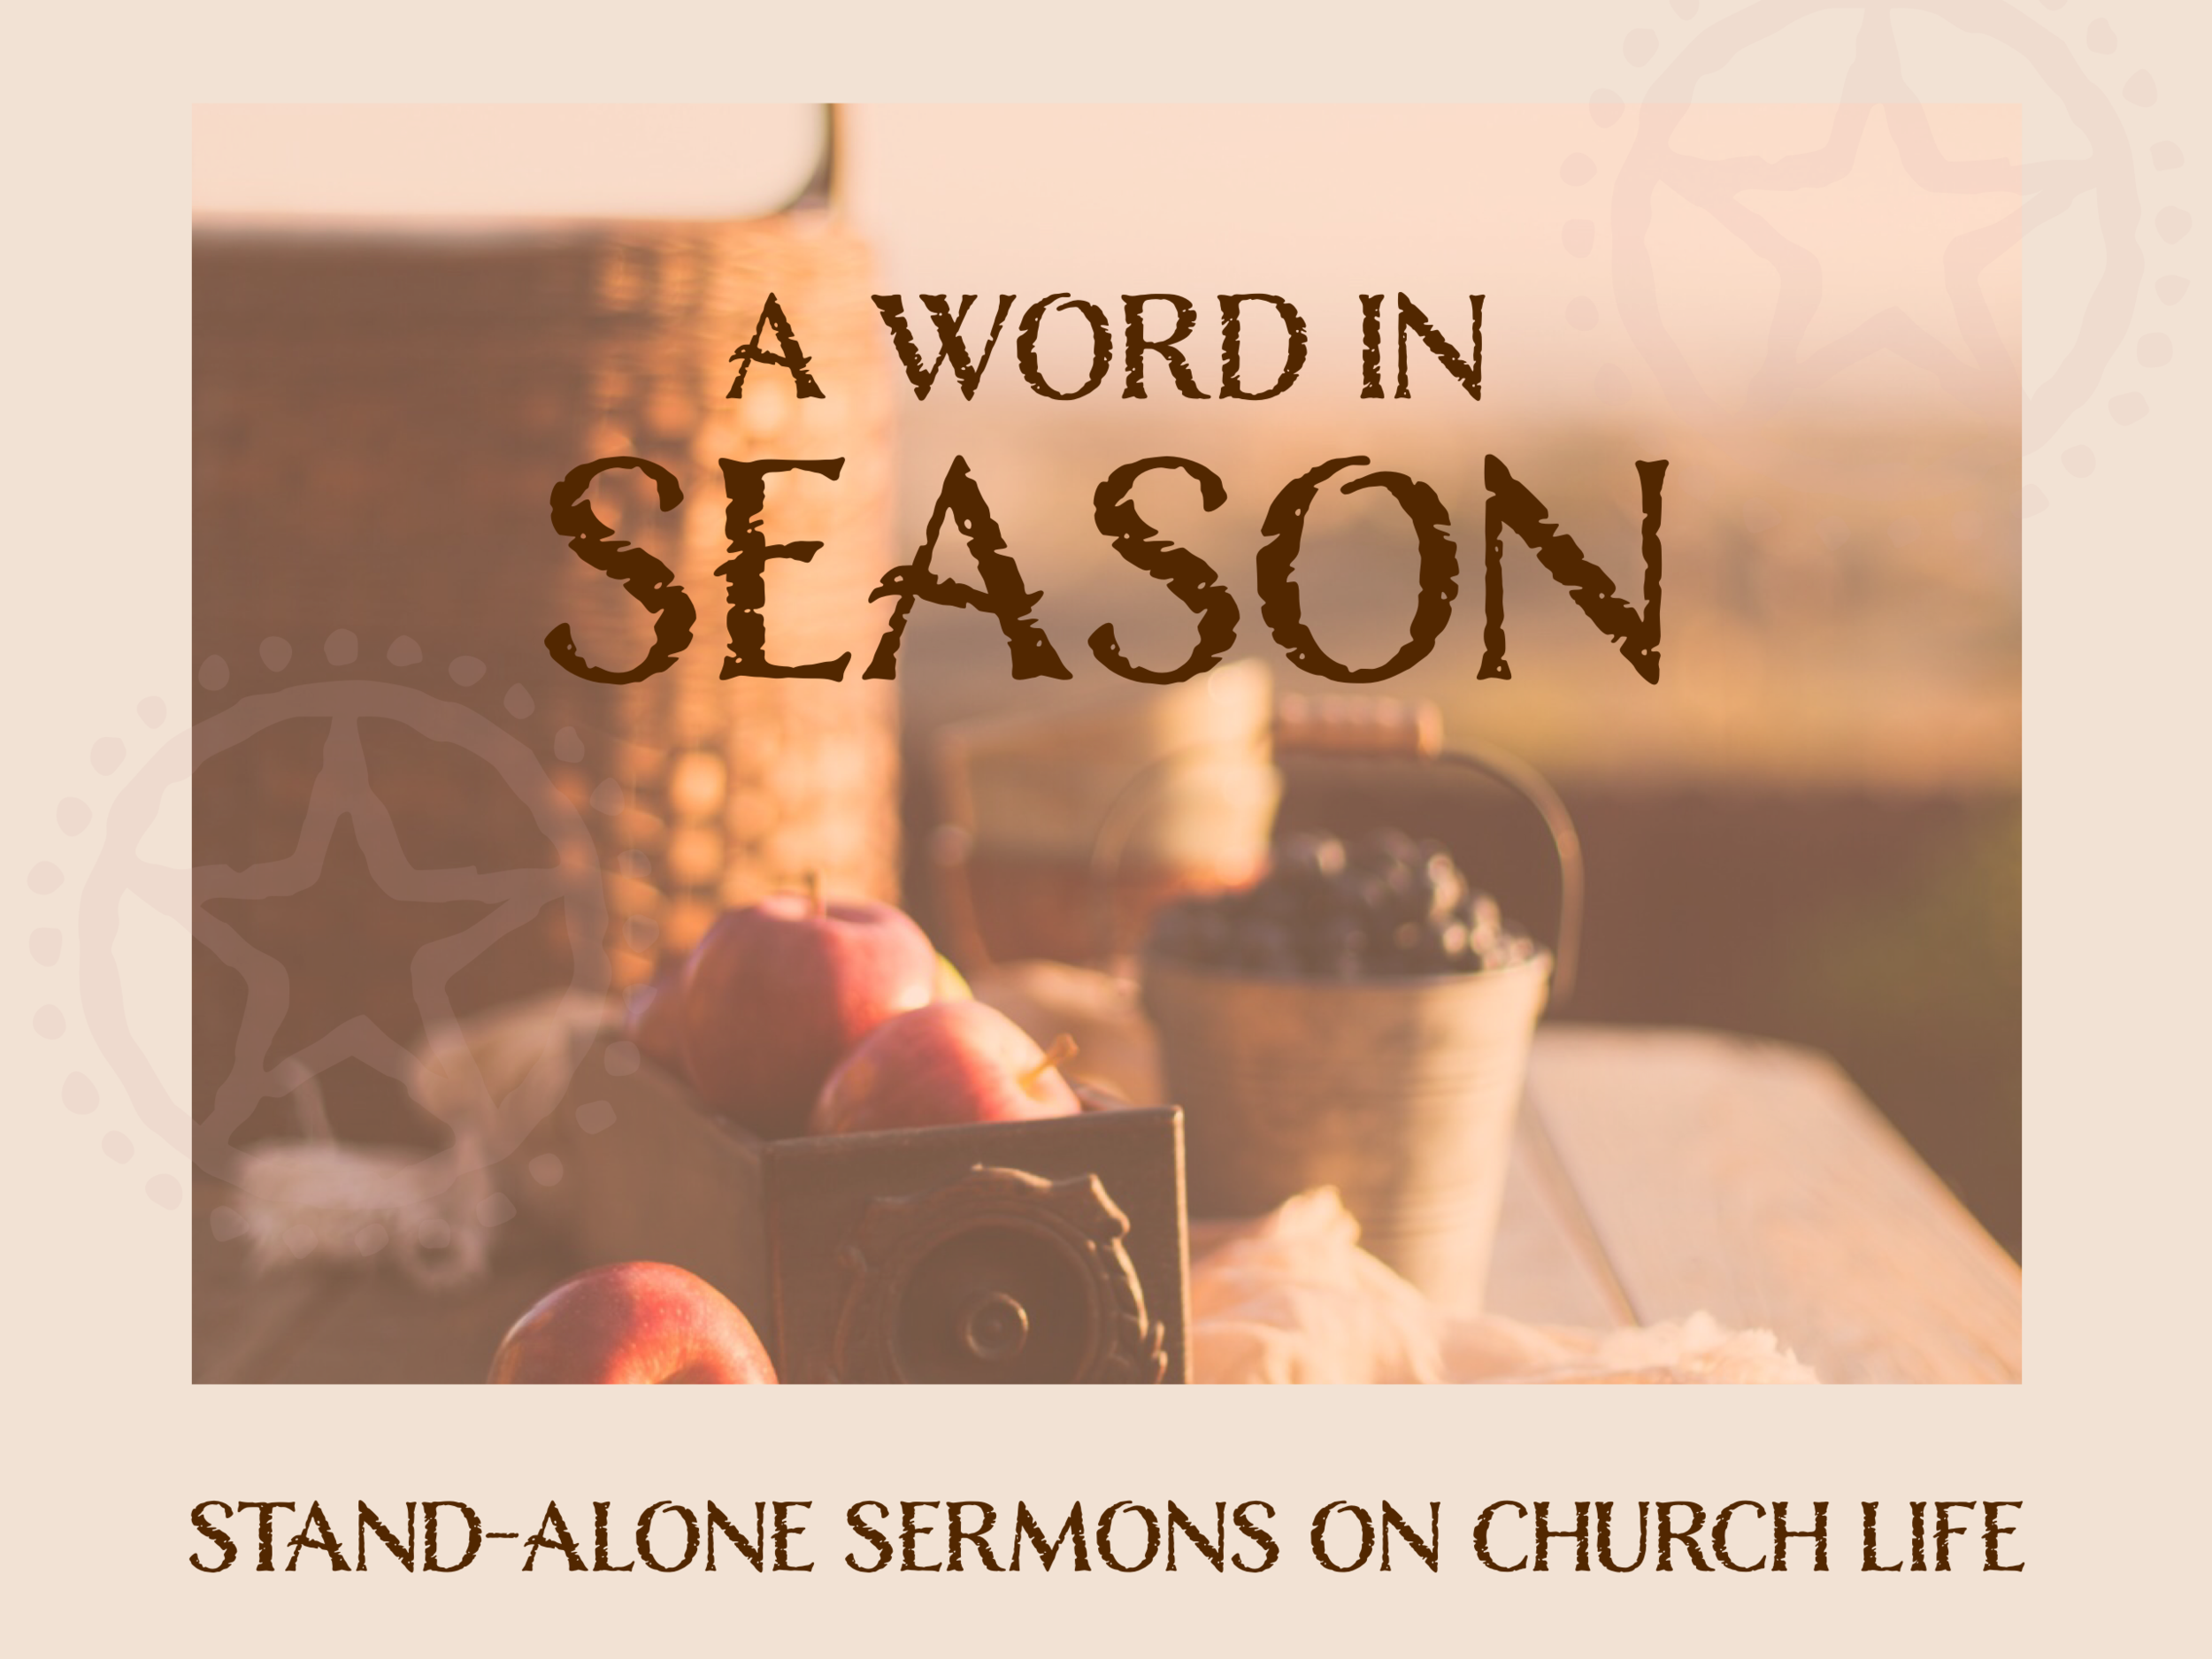 Single Sermons - Sometimes in church life we break from our book series to talk about something important for the moment we're in or to celebrate a Holy Day. You can find those sermons here.